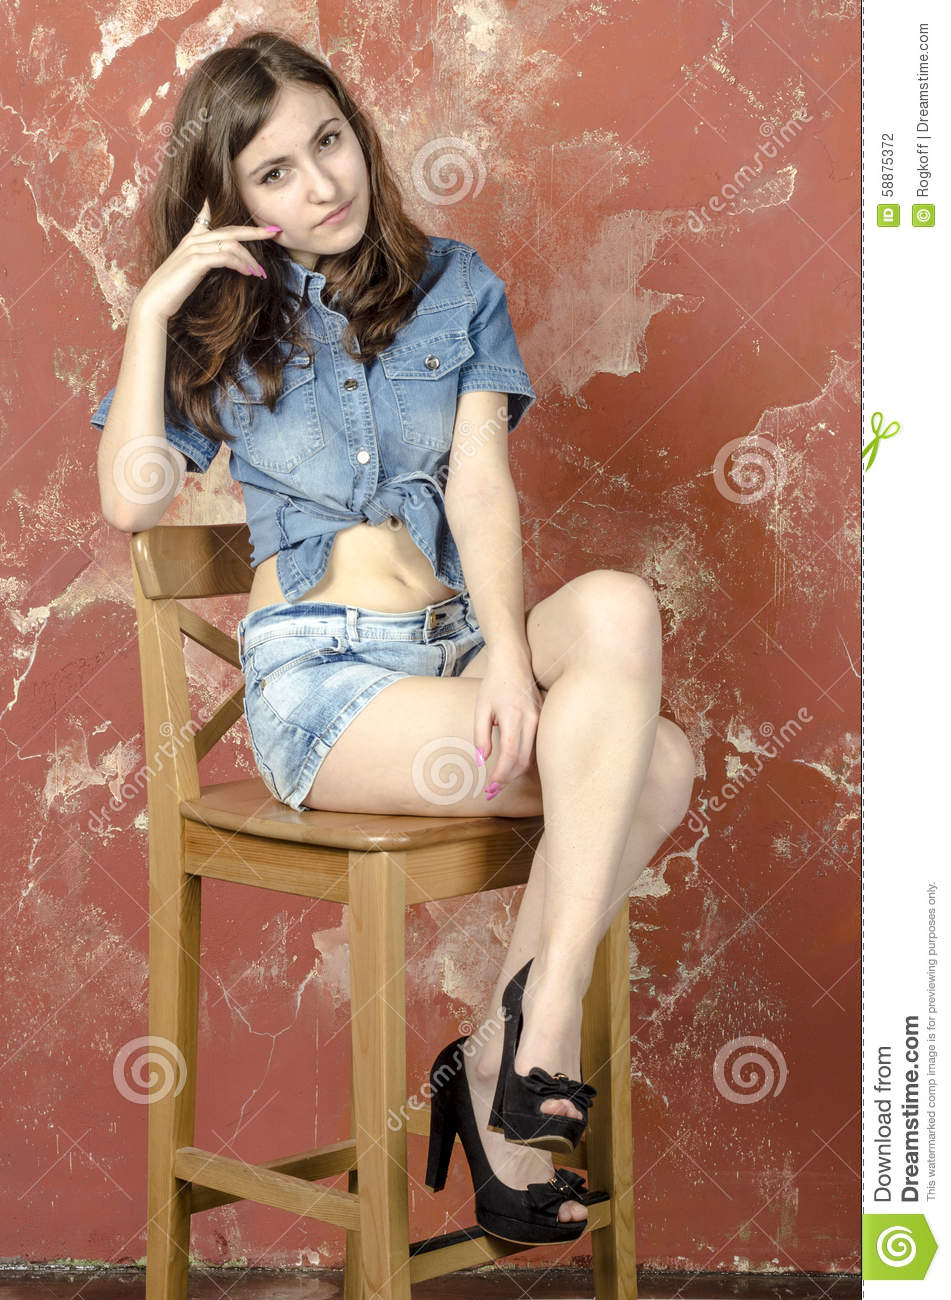 Cheerful Young Teen Girl In Denim Shorts Stock Photo - Image: 58875372